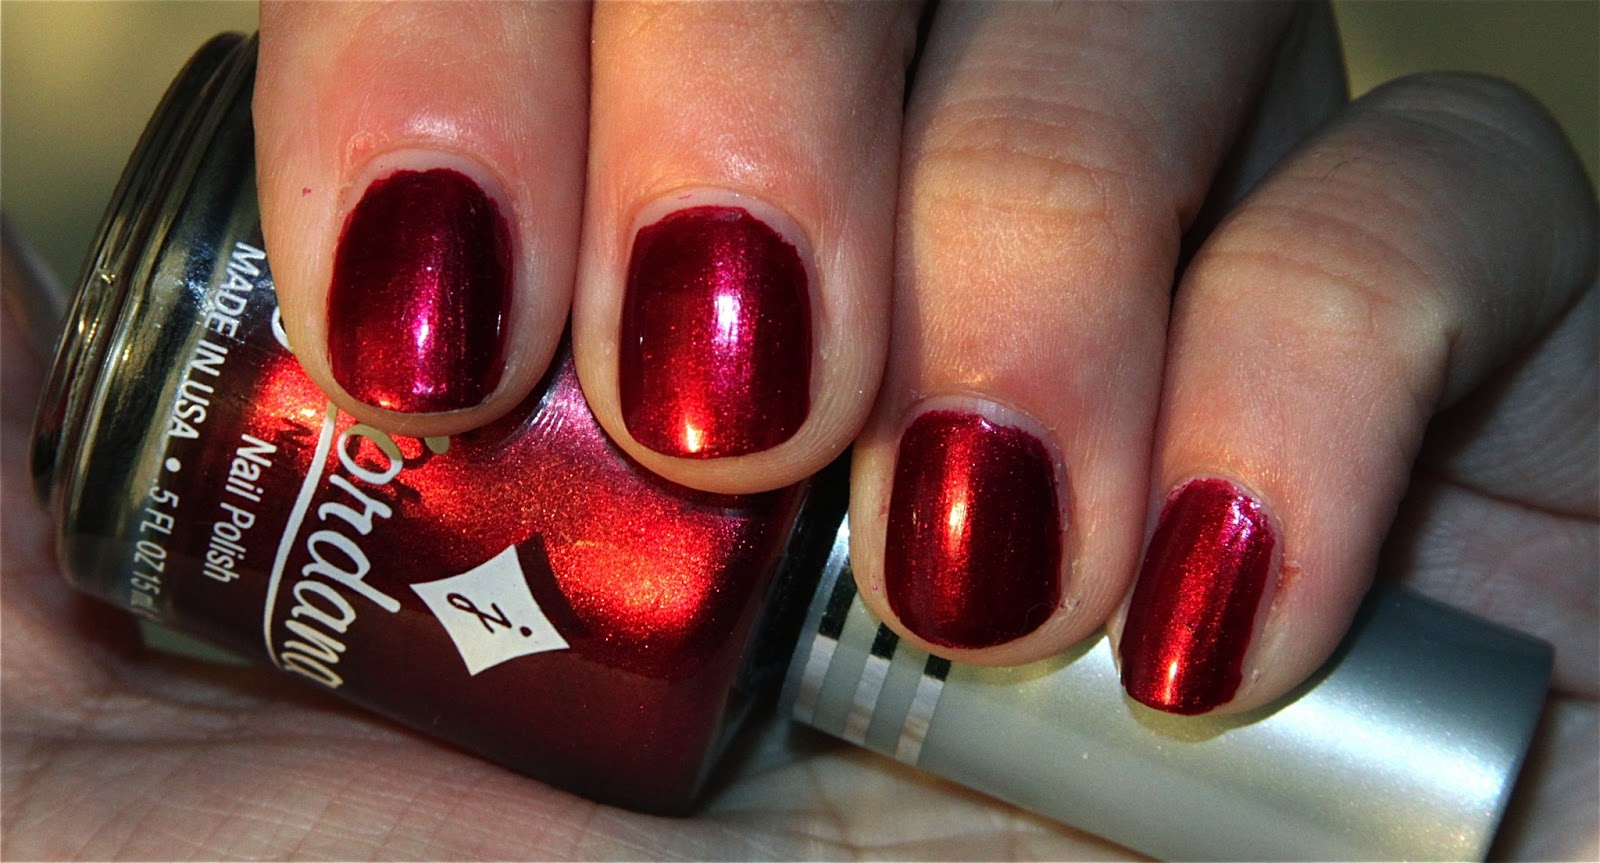 Glitter Kitty: Jordana Nail Polish - Ruby Slippers